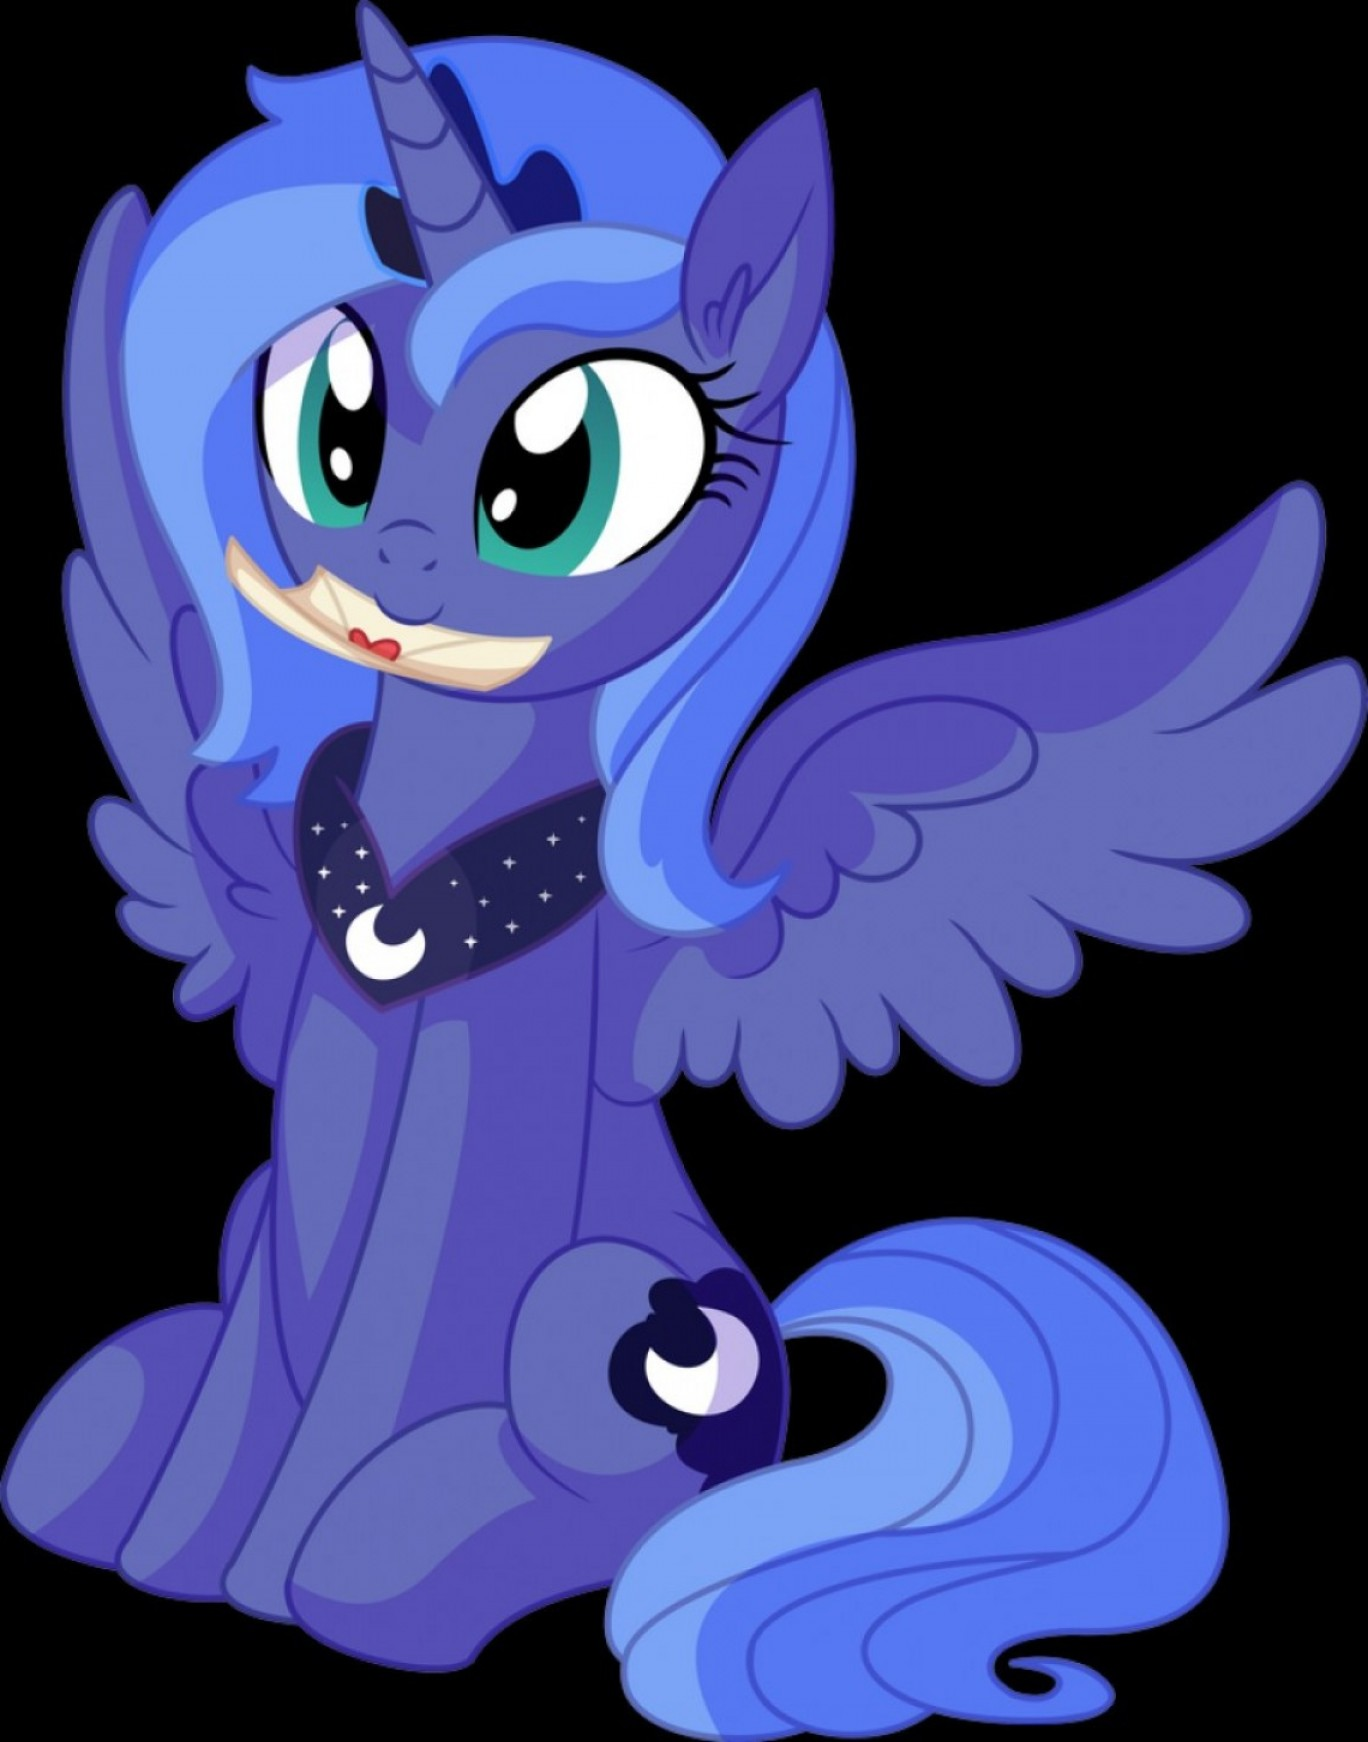 Vector From Sonic DeviantART: Princess Luna Vector Letter From A Princess